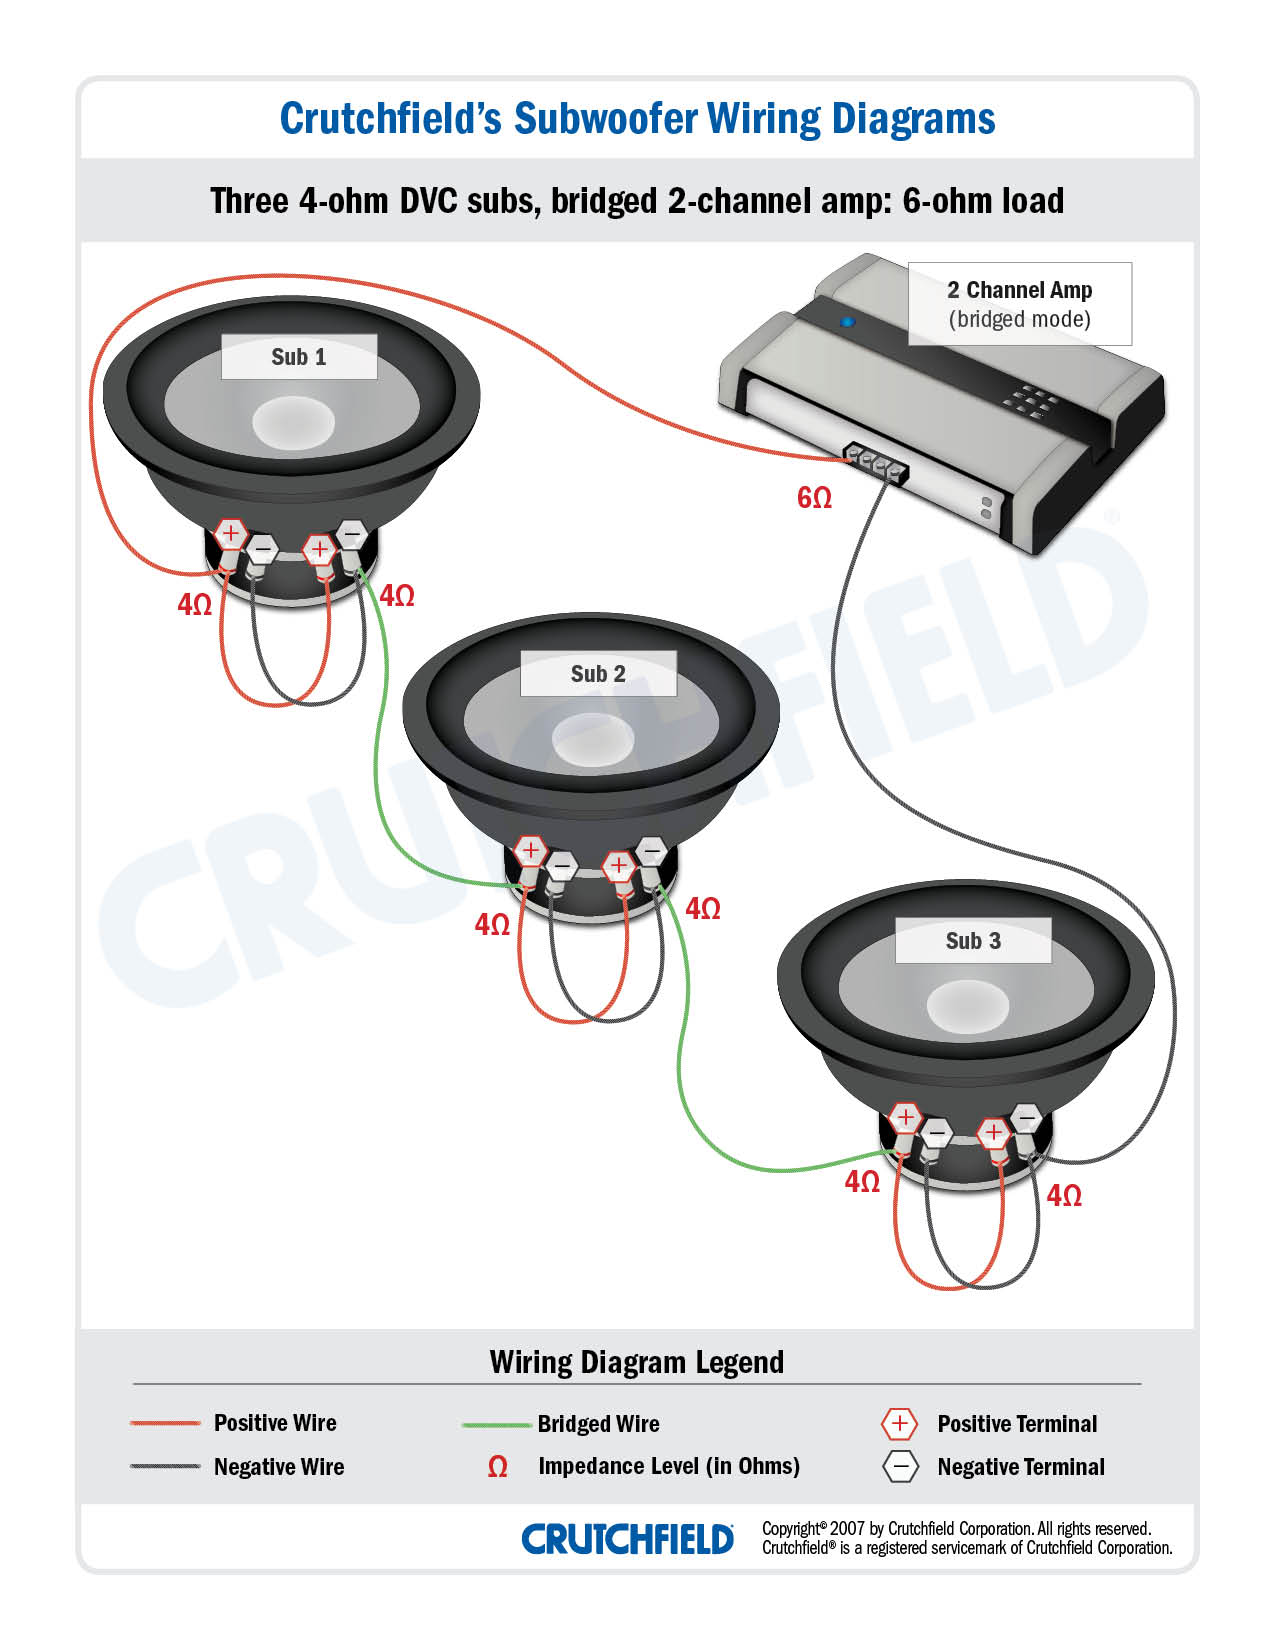 3 DVC 4 ohm 2 ch subwoofer wiring diagrams dual 4 ohm voice coil wiring diagram at cos-gaming.co